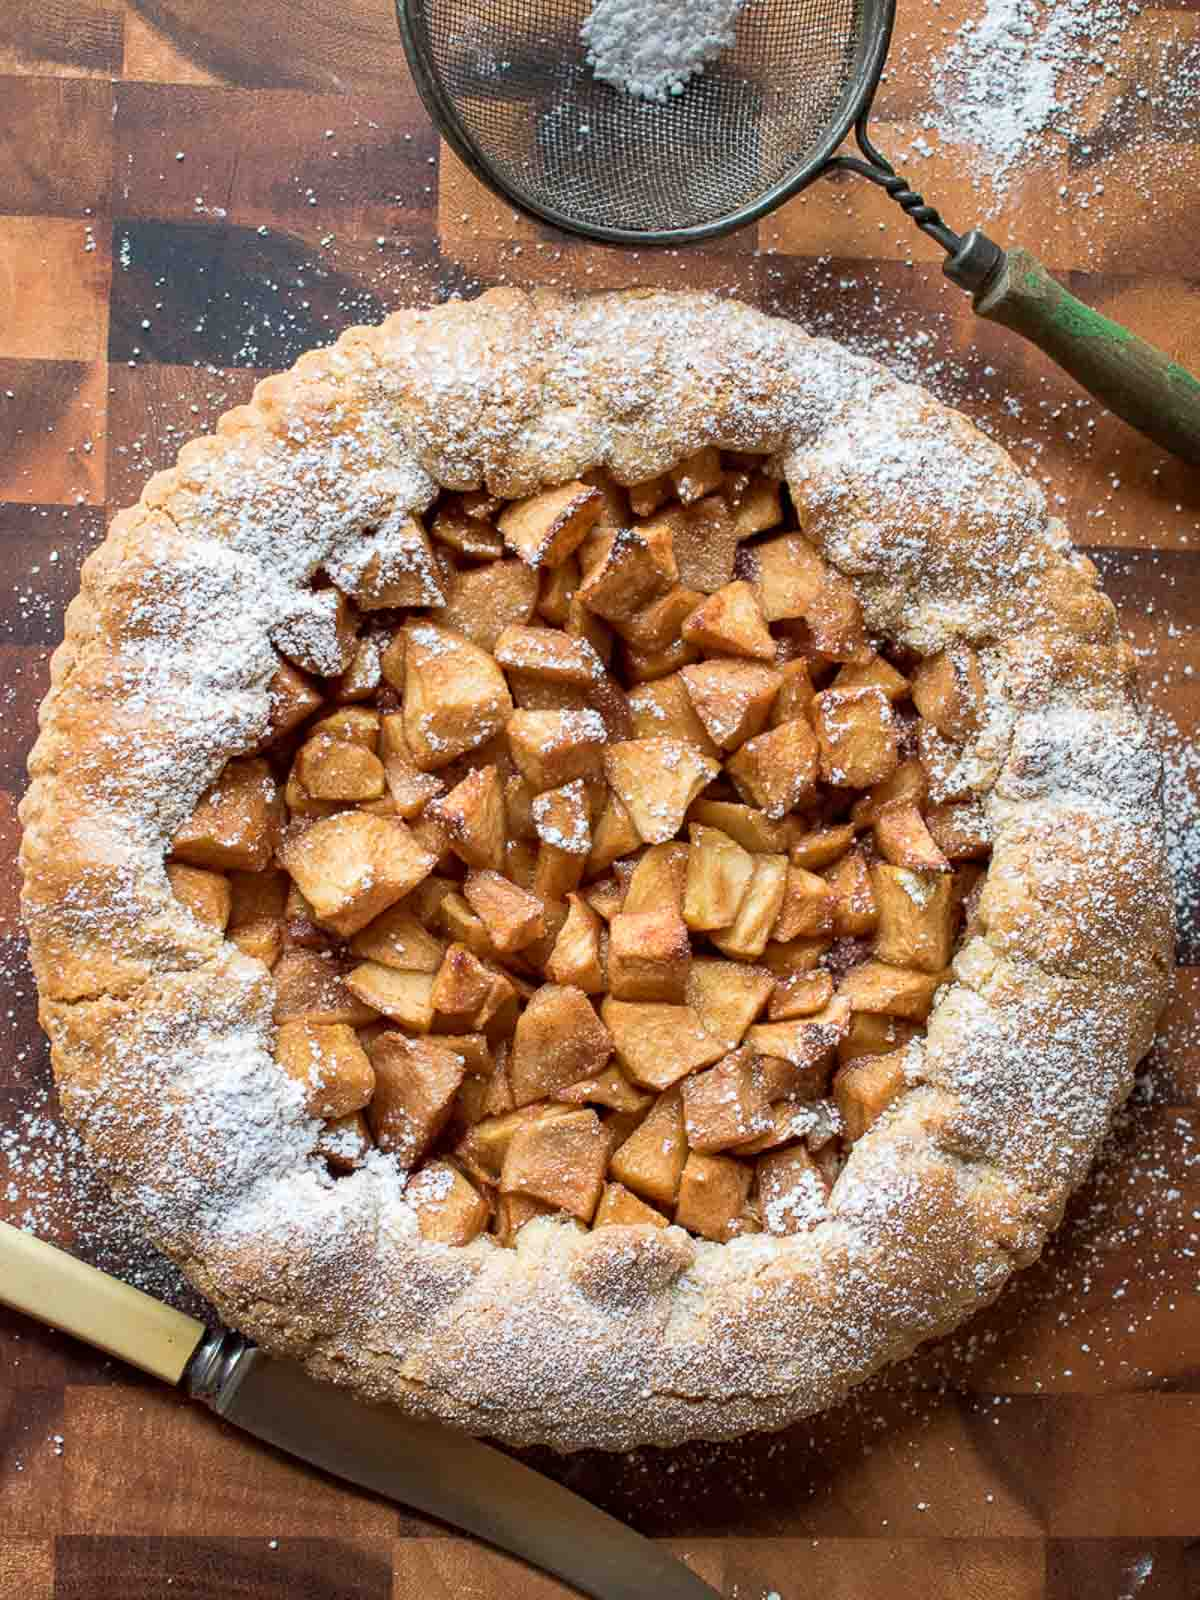 apple crostata dusted with powdered sugar on a wooden board viewed from above.